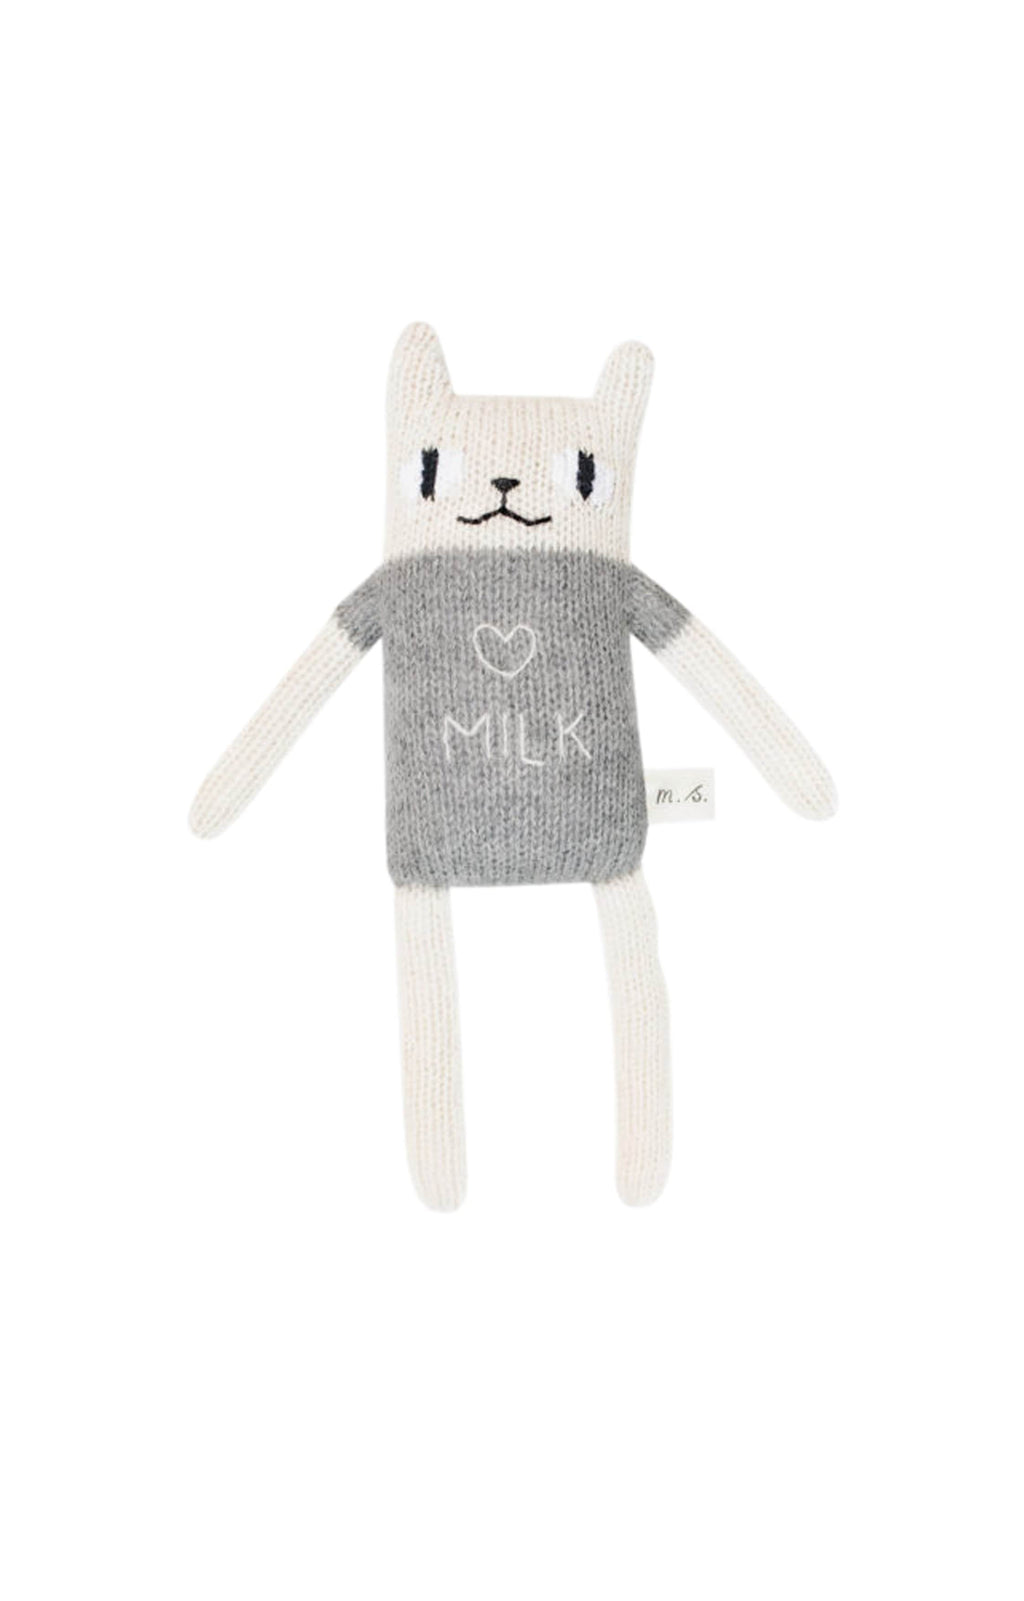 "Main Sauvage ""milk"" cat knit toy, Grey (Pre-Order Feb)"